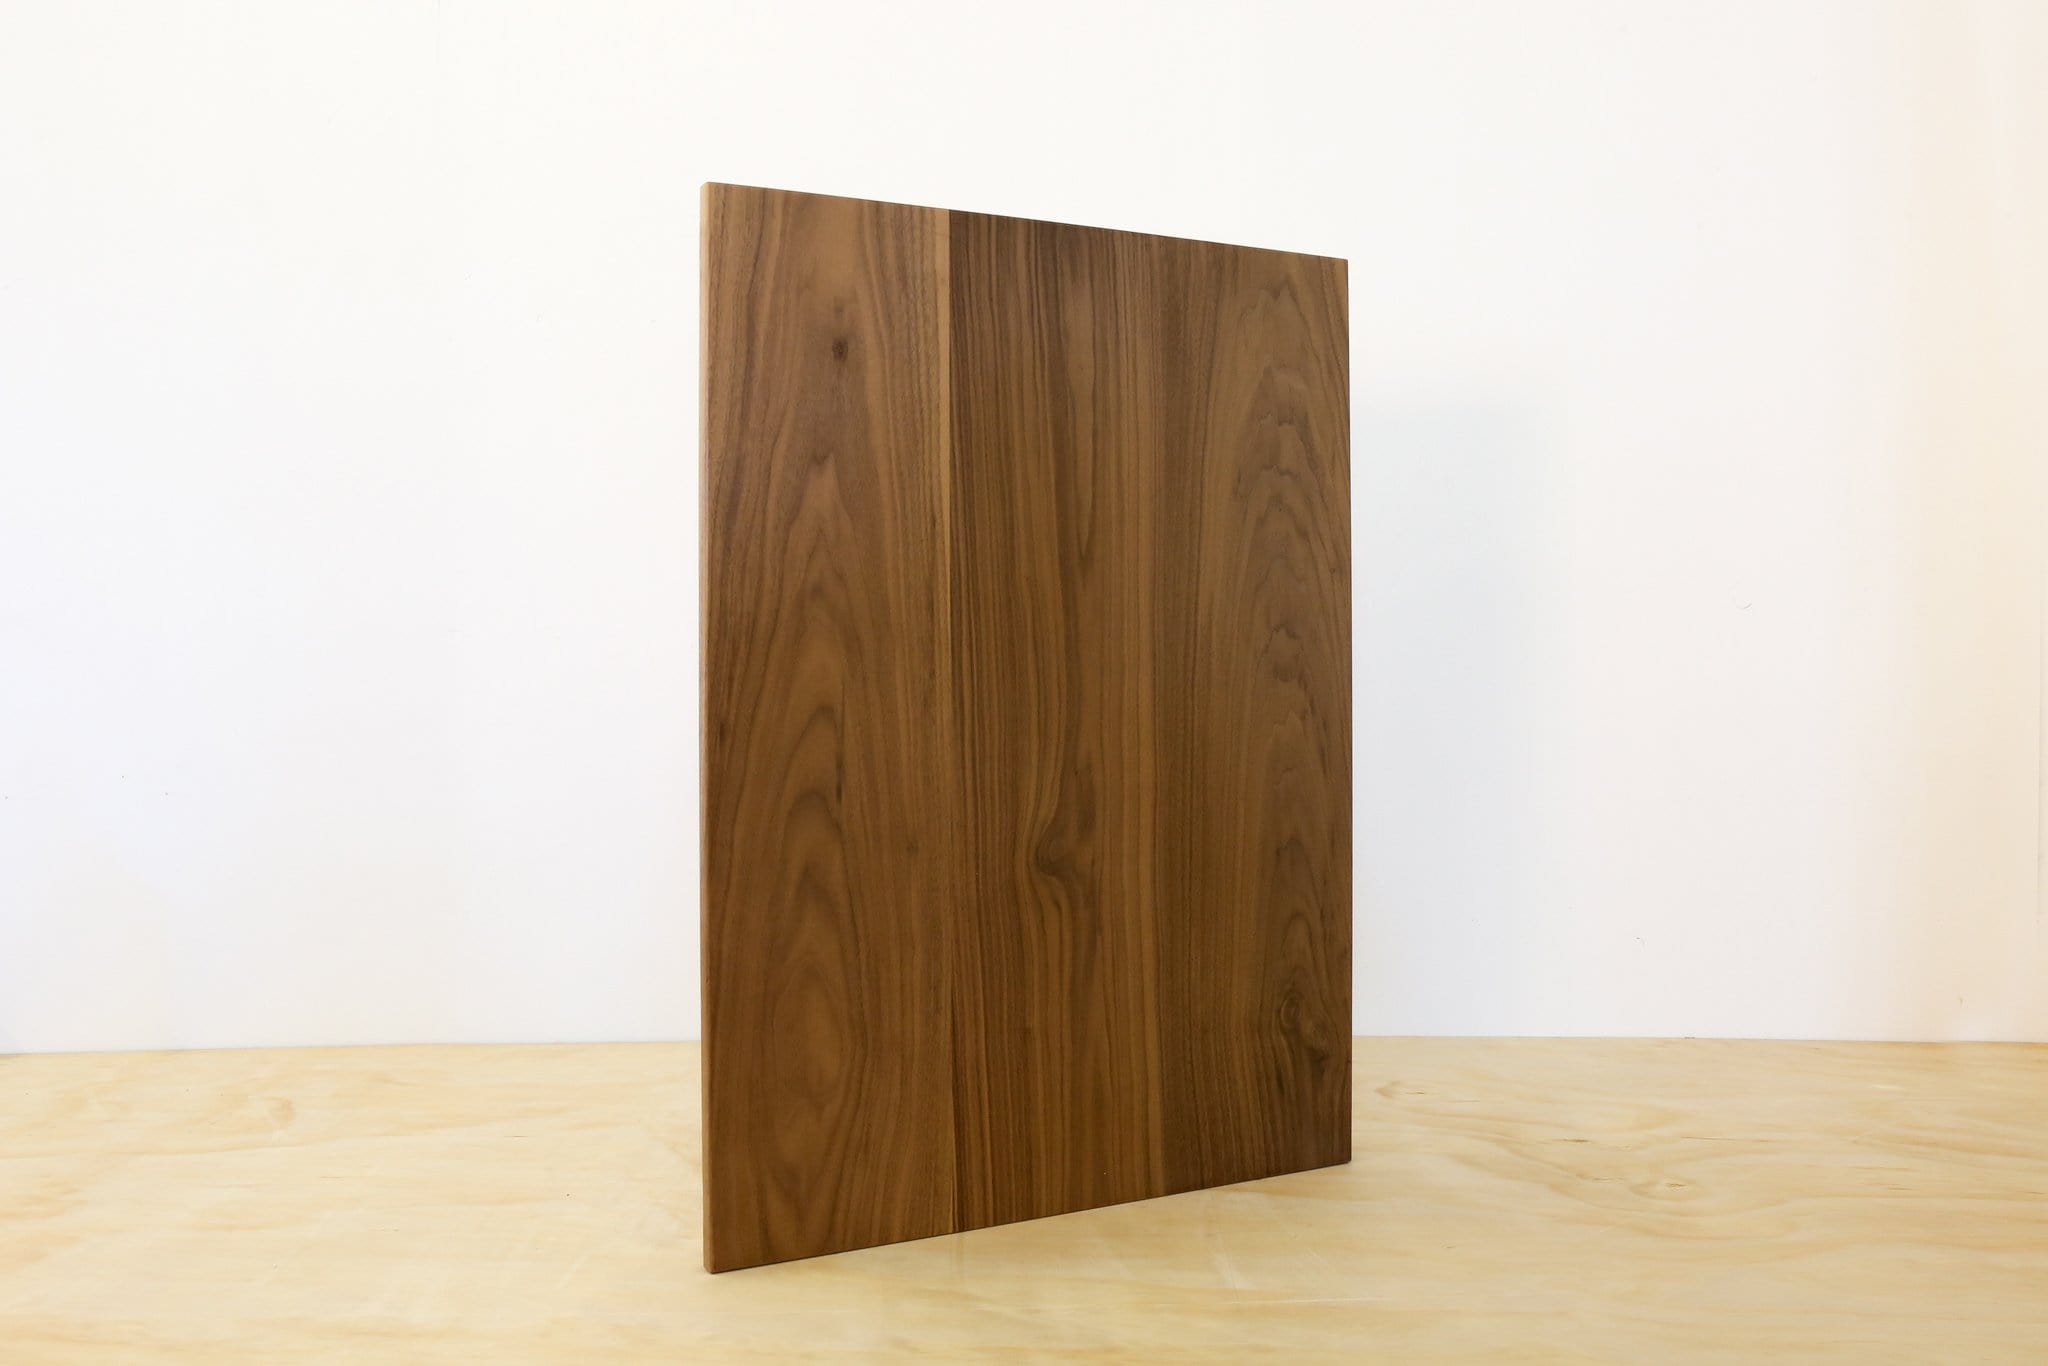 COVER PANEL - American Walnut